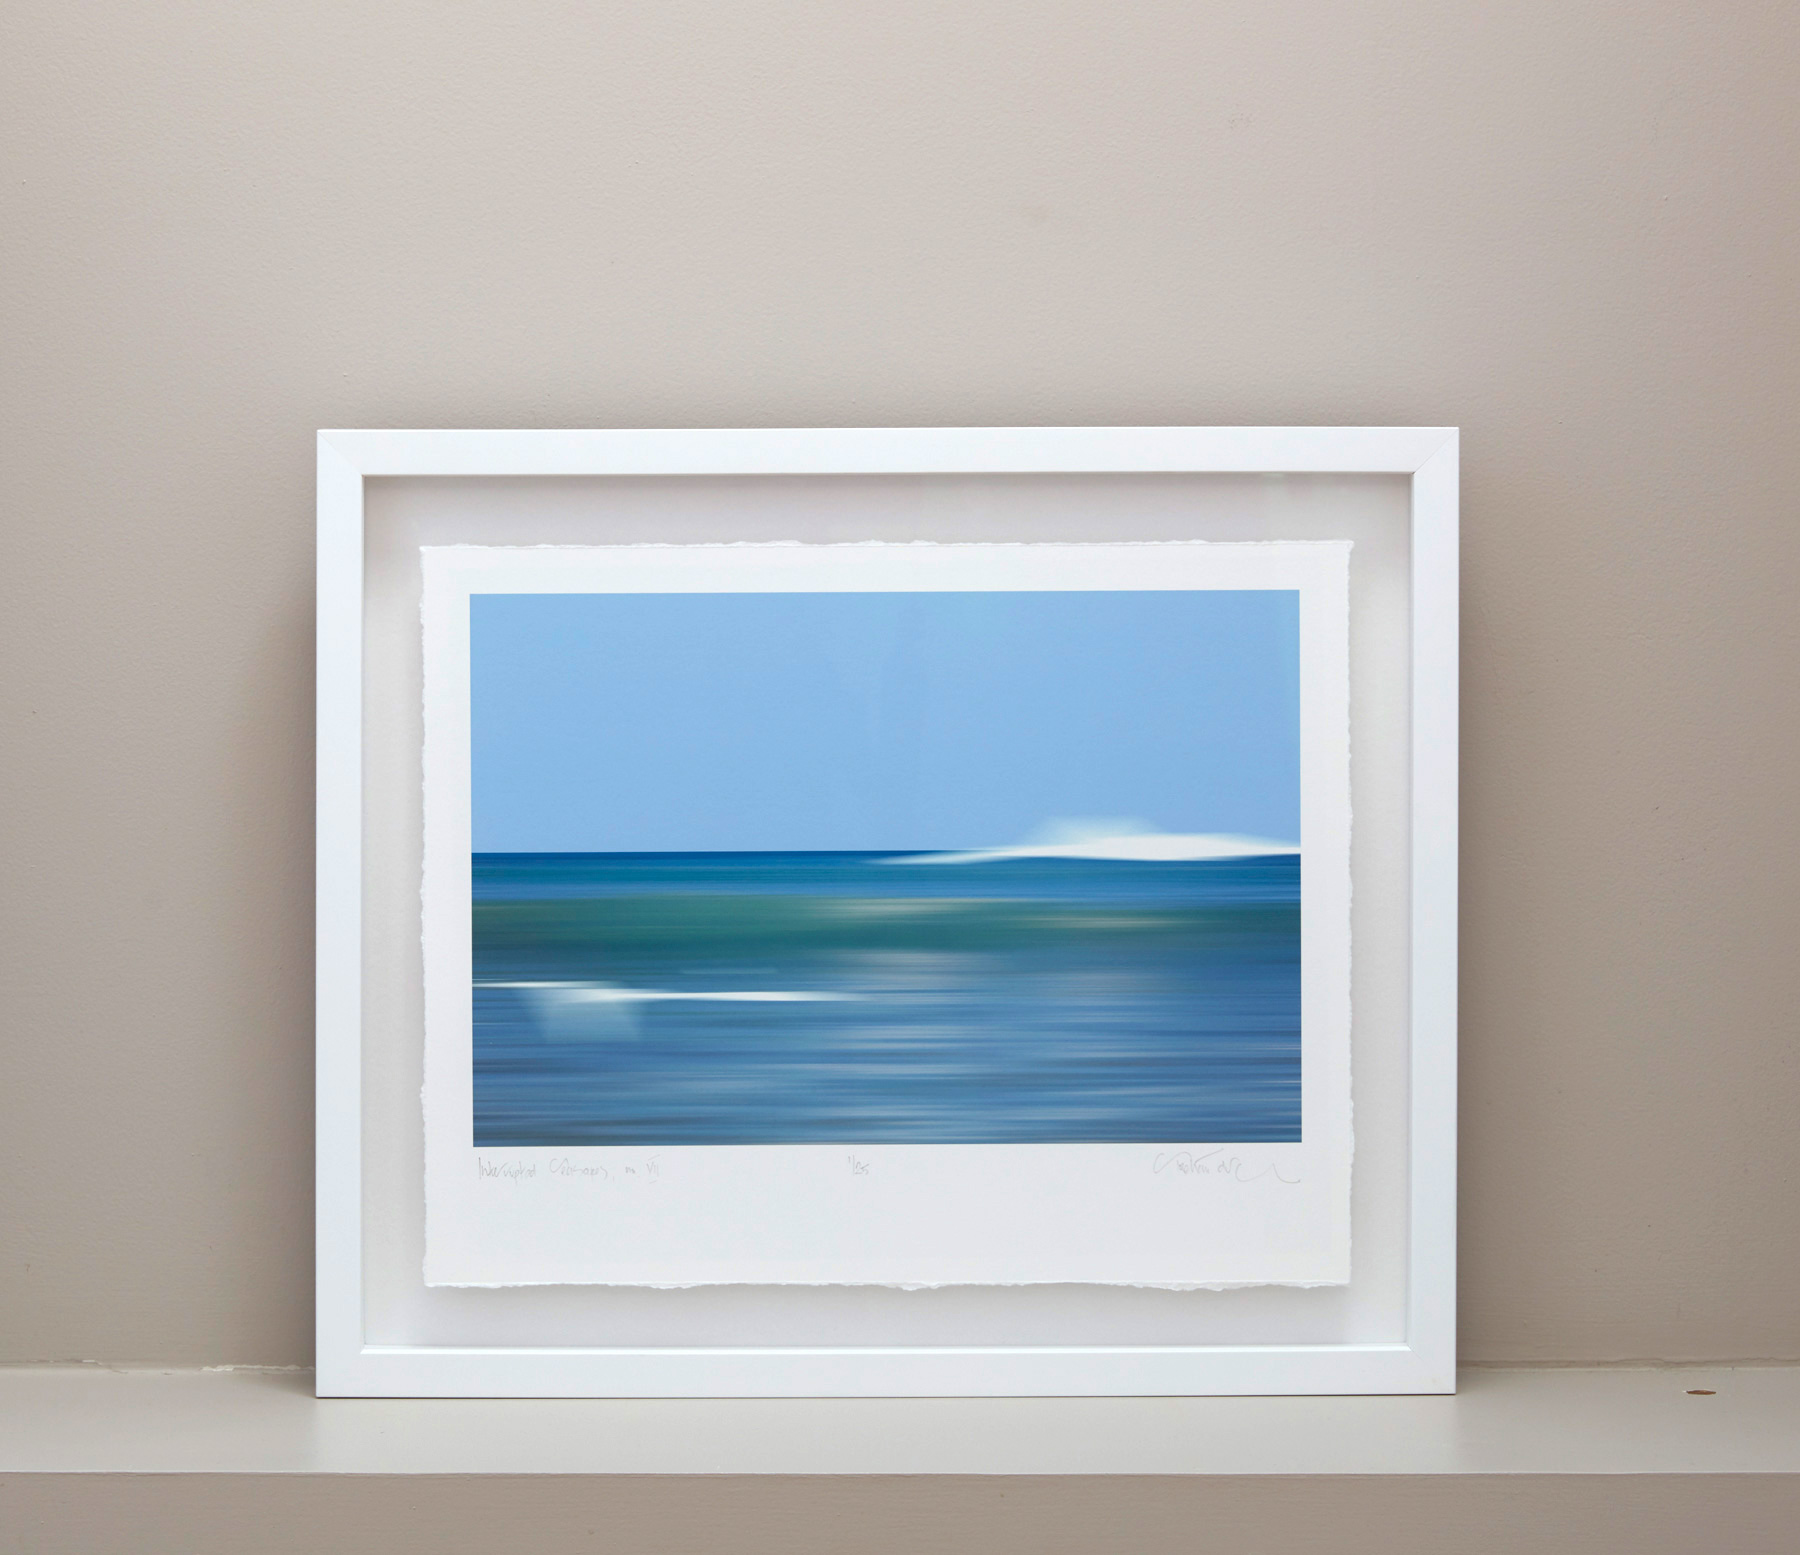 Interrupted Seascape, floating deckled edge print within a white box frame